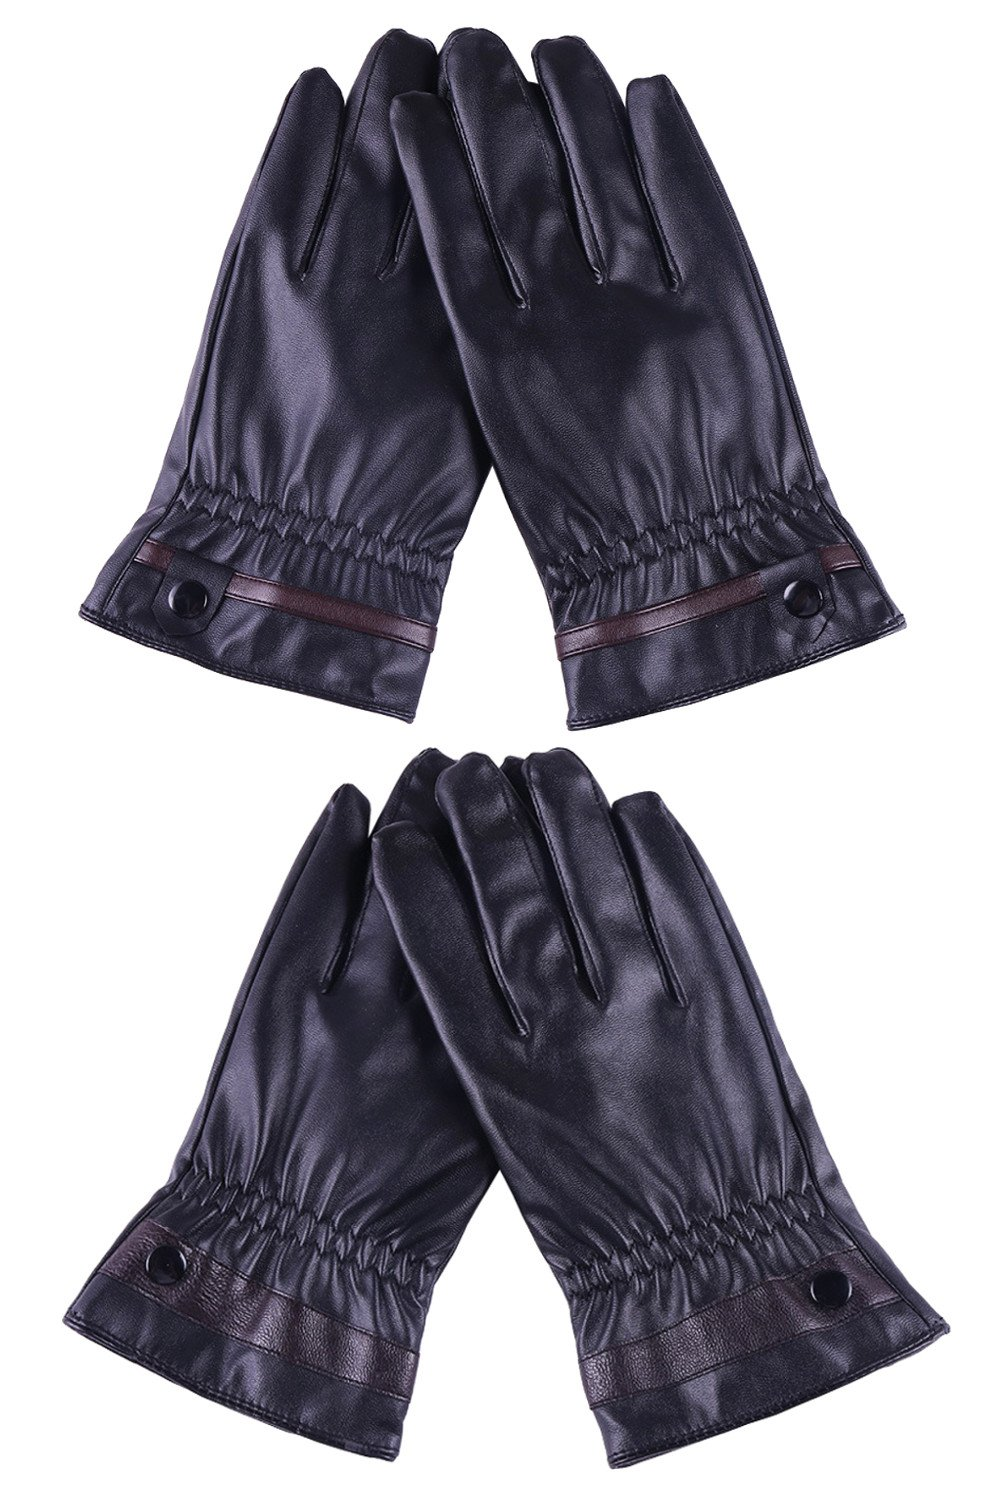 Womens Black Leather Gloves with Fleece Lining Warm Winter Touch Screen Gloves, Pack of 2 Pairs